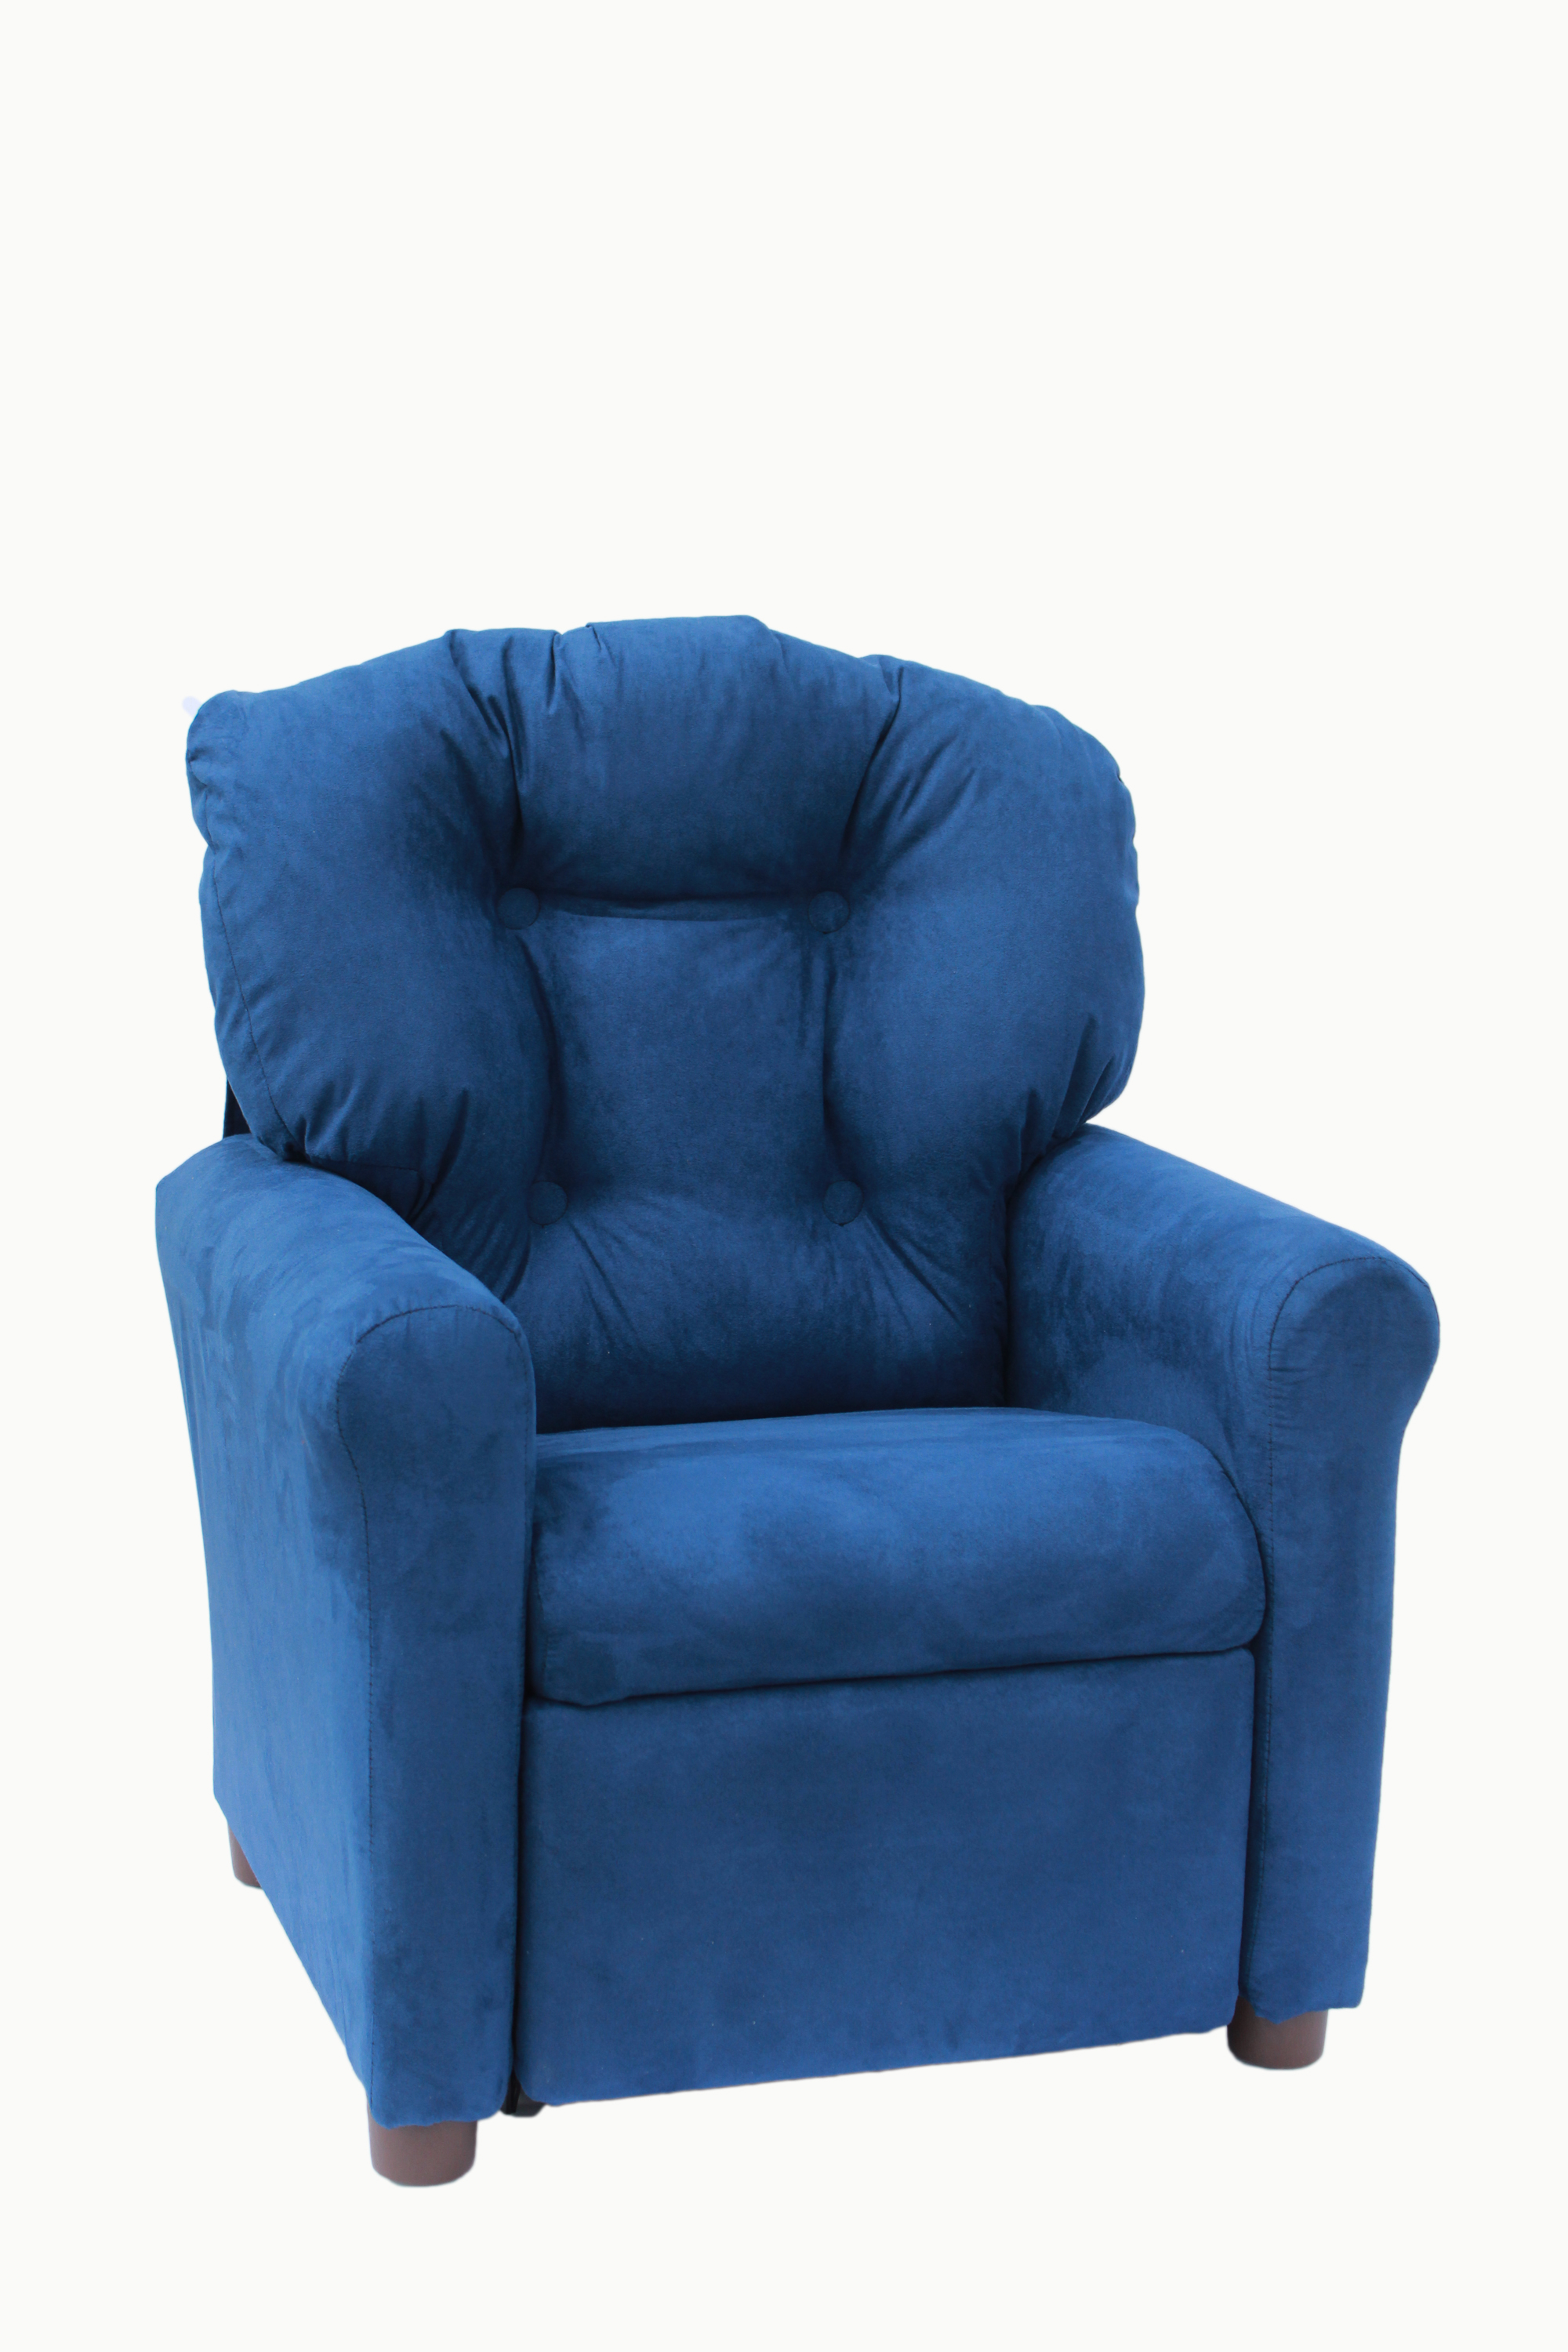 Crew Furniture Traditional Child Recliner Available in Multiple